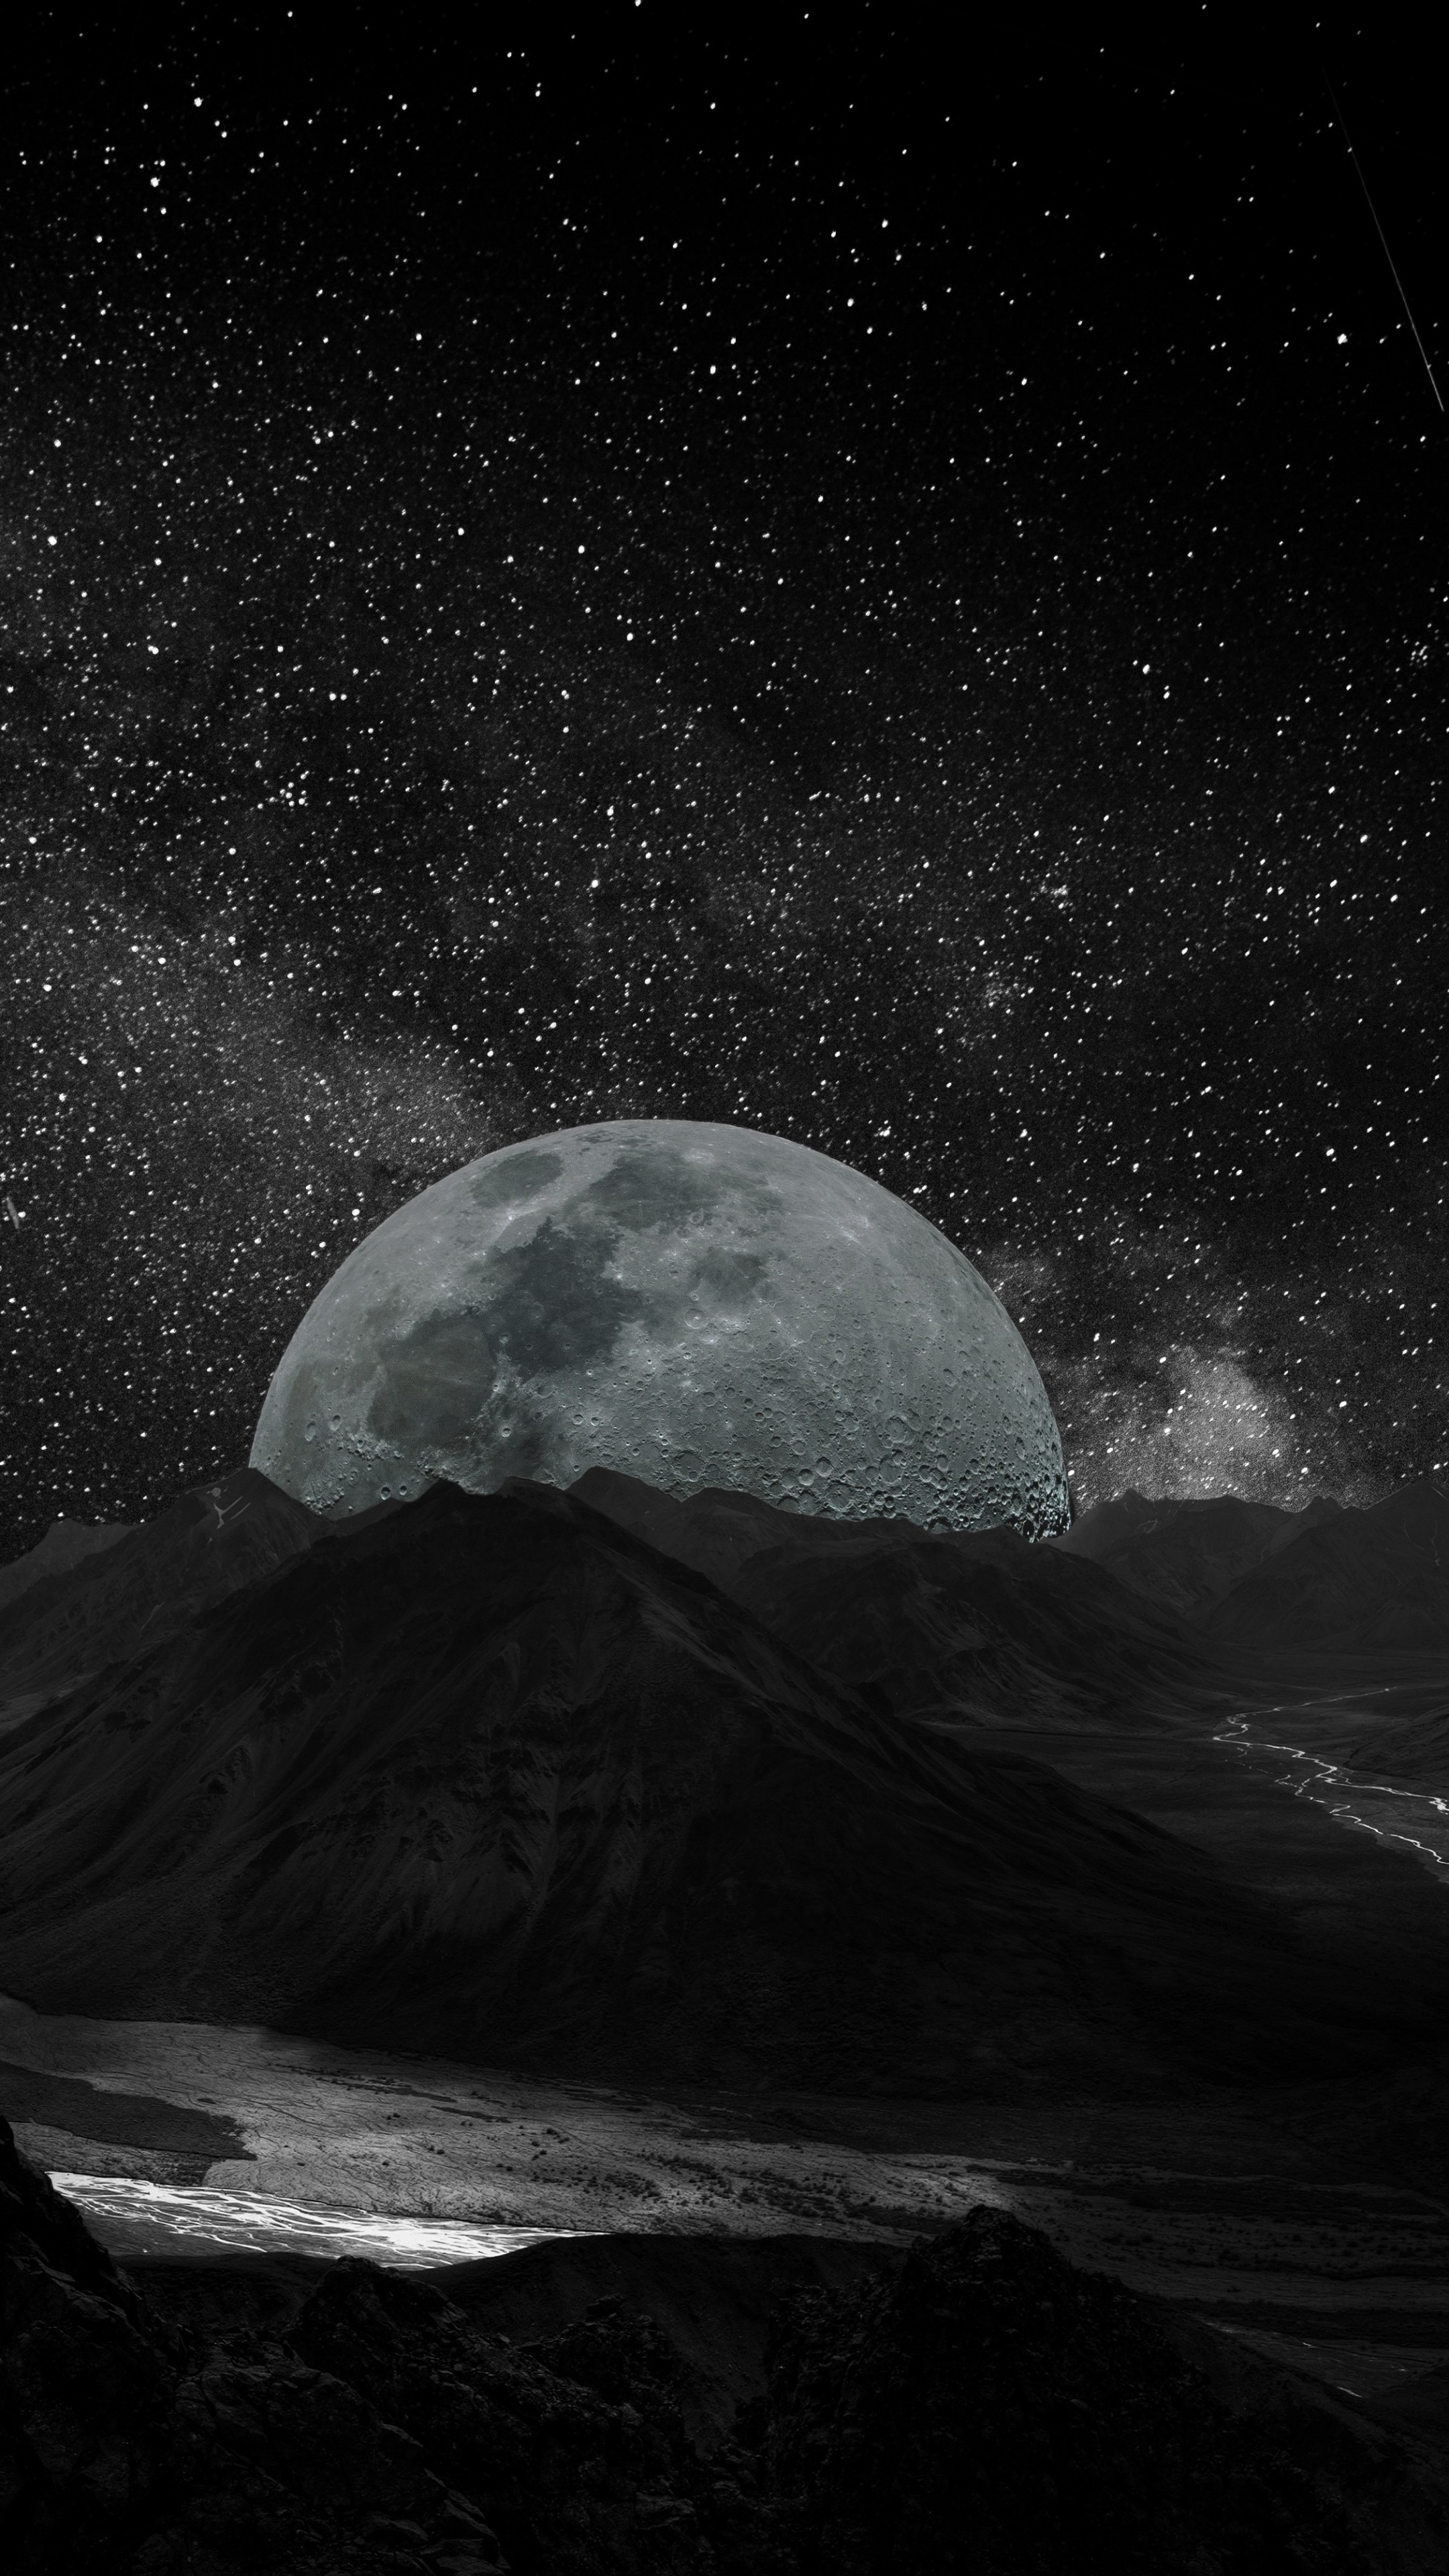 Moon To Moon Luxury Bohemian Interiors Martyn Lawrence: Wallpaper Moon, Planet, Space, Milky Way, 5k, Space #17041